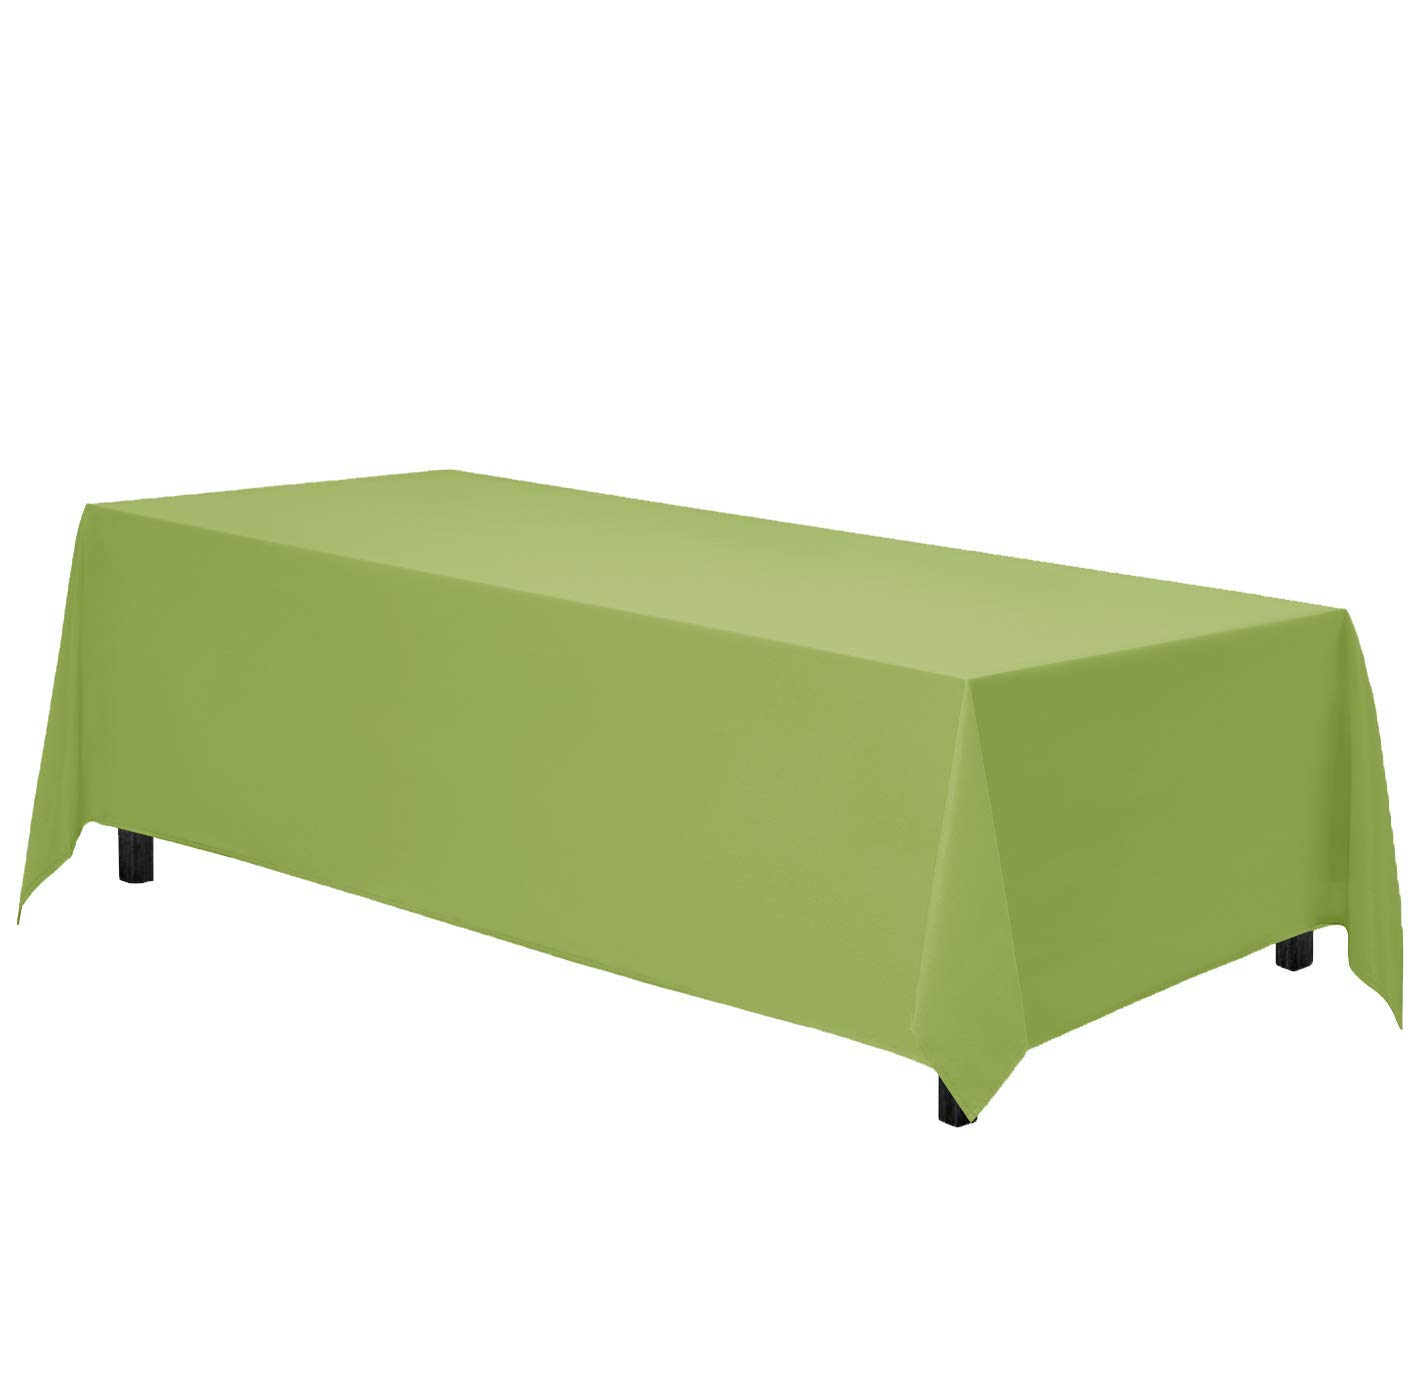 Gee Di Moda Rectangle Tablecloth - 90 x 132 Inch - Apple Green Rectangular Table Cloth for 6 Foot Table in Washable Polyester - Great for Buffet Table, Parties, Holiday Dinner, Wedding & More